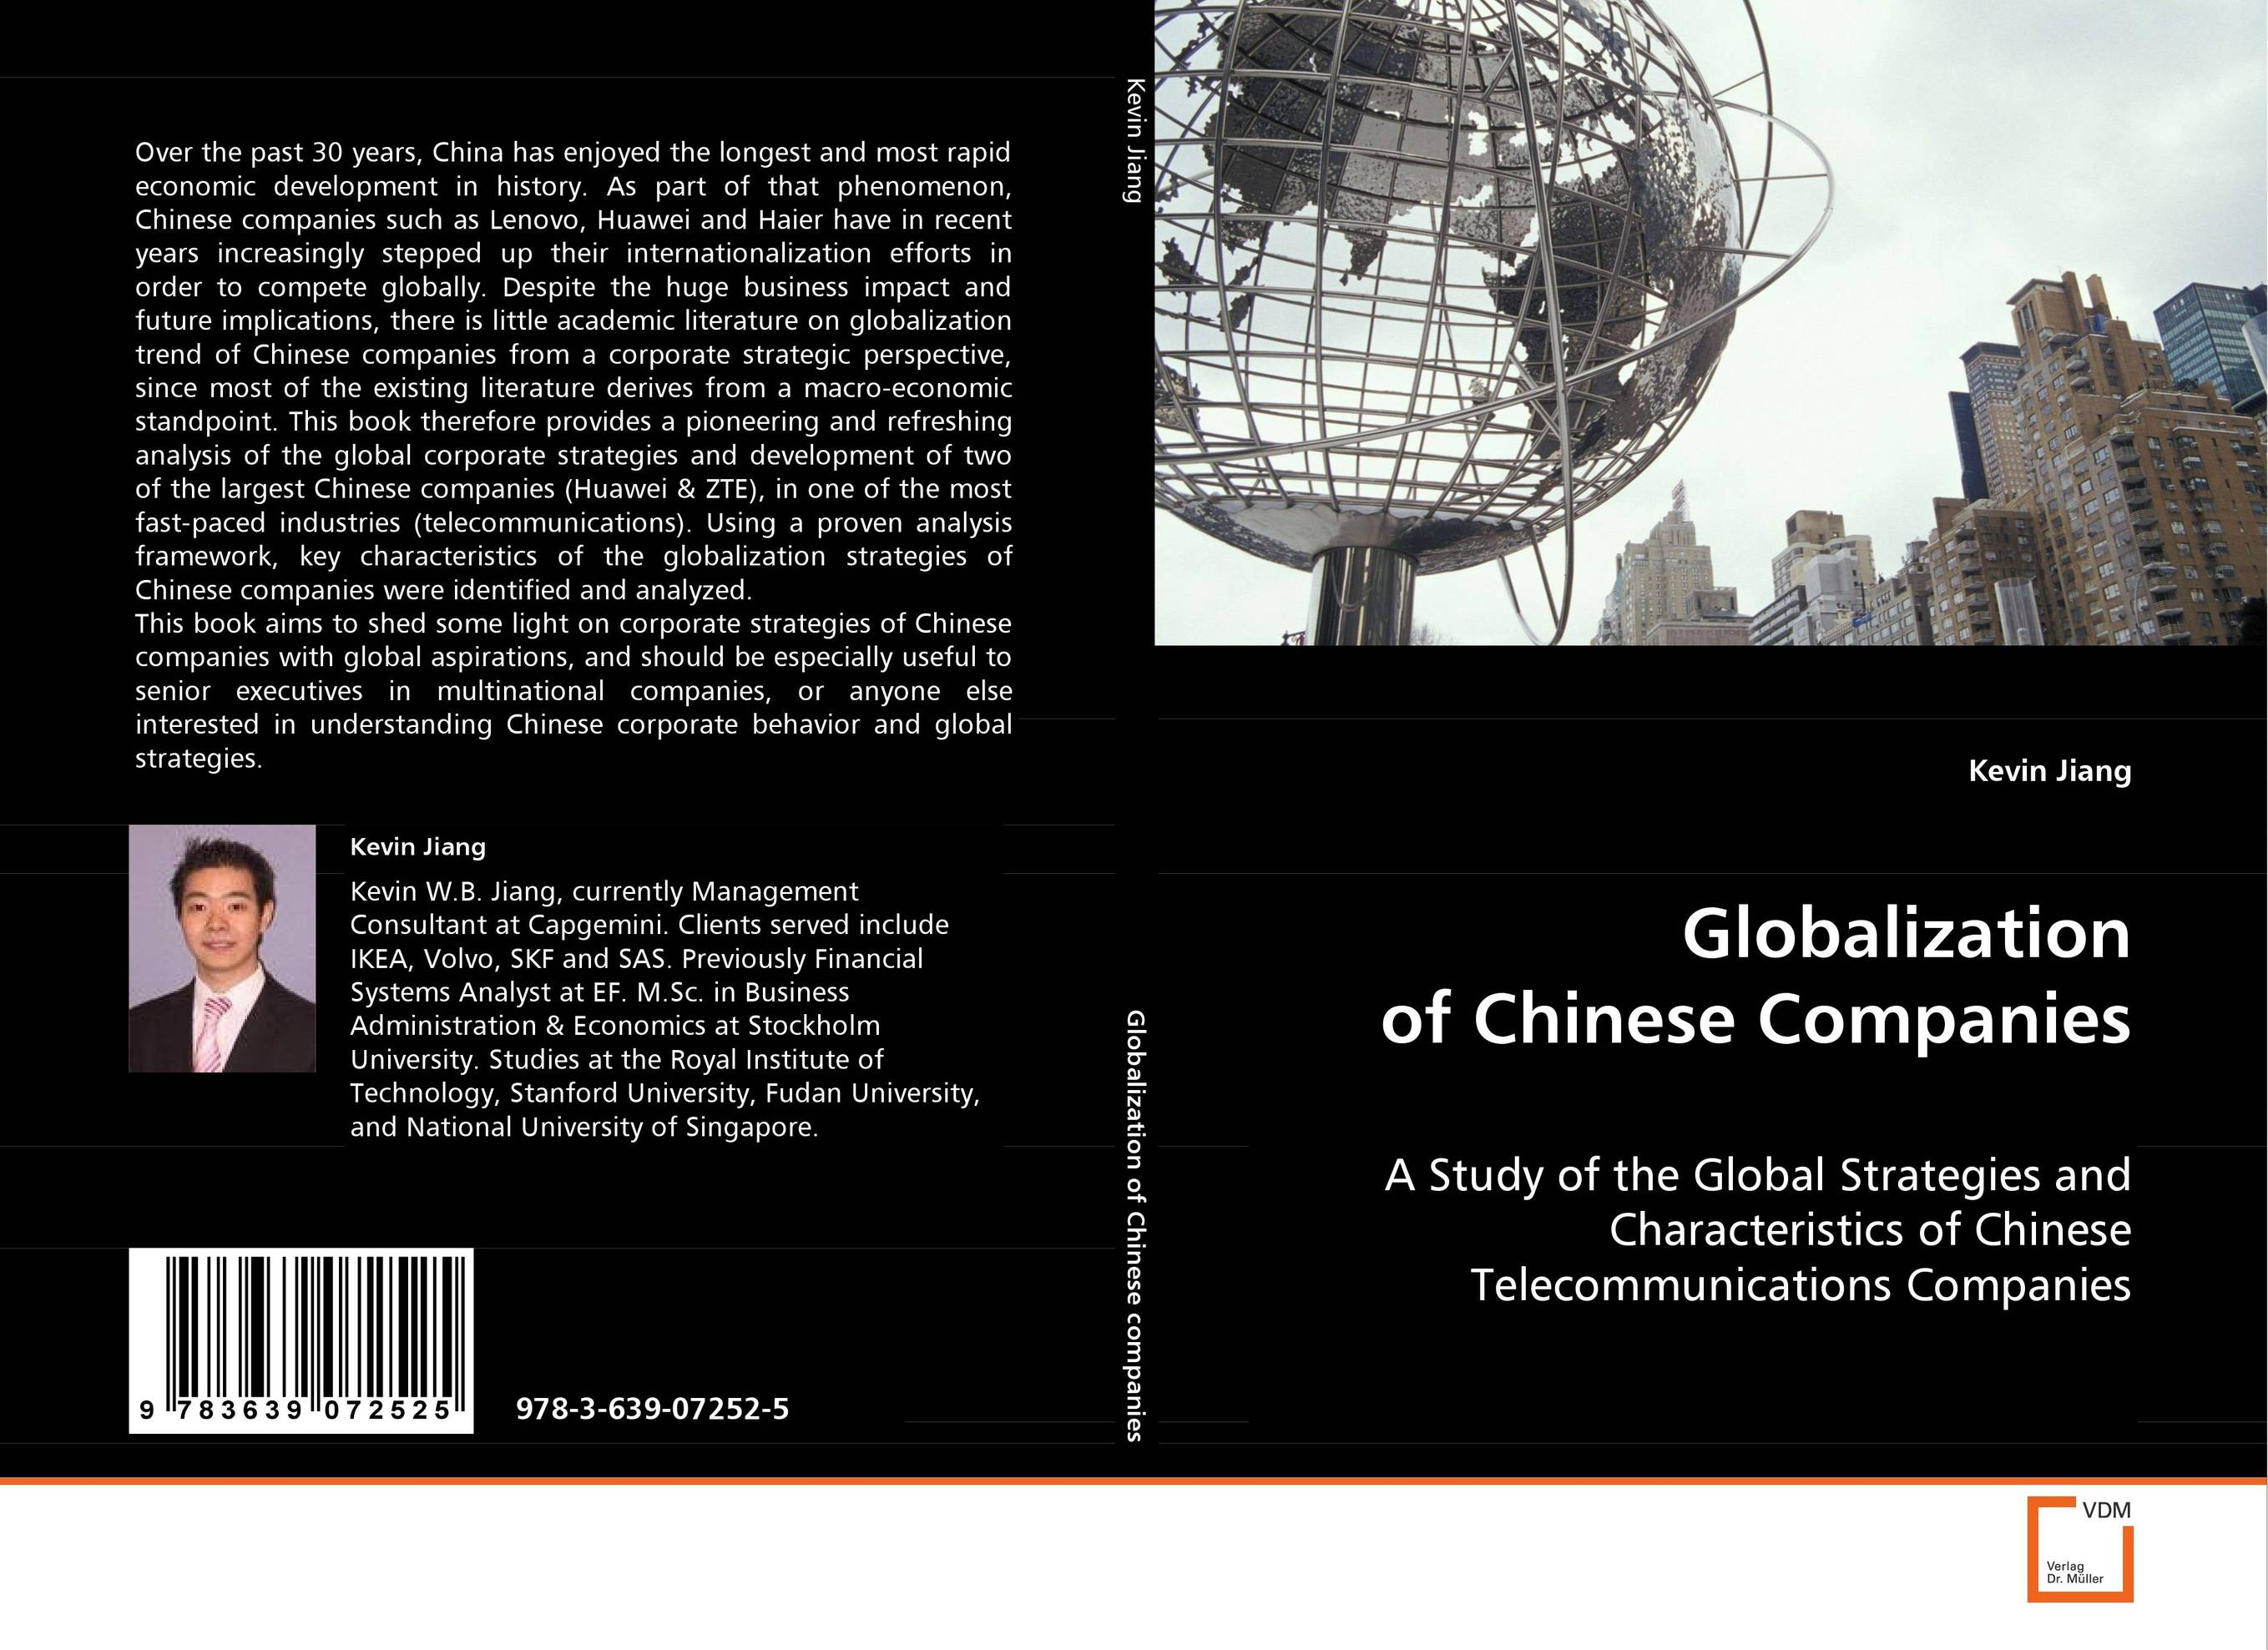 Globalization of Chinese Companies